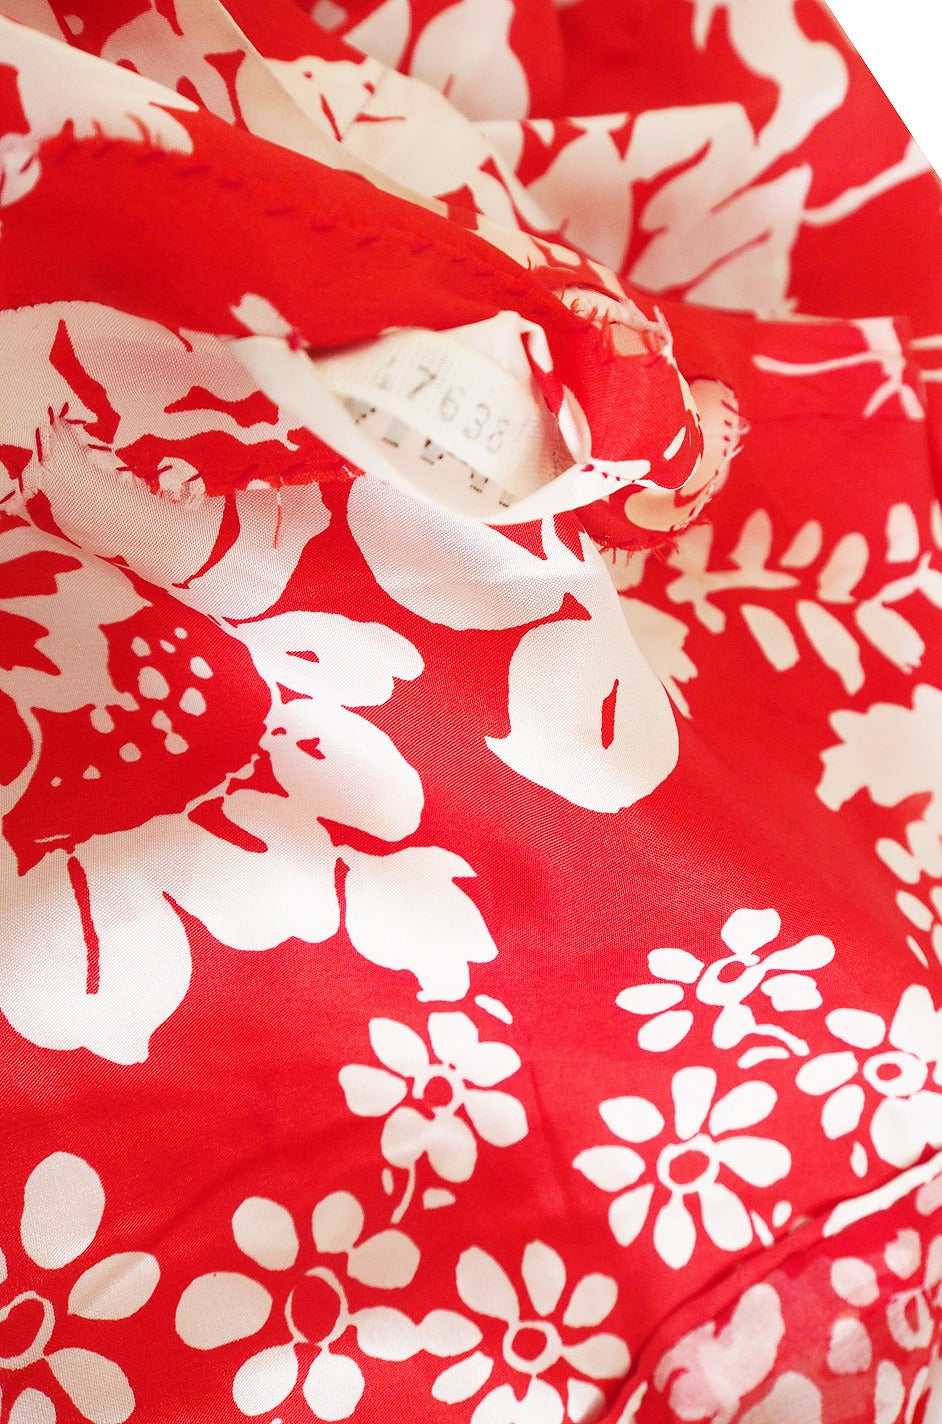 1973 Haute Couture Chanel Red Print Silk Dress 9